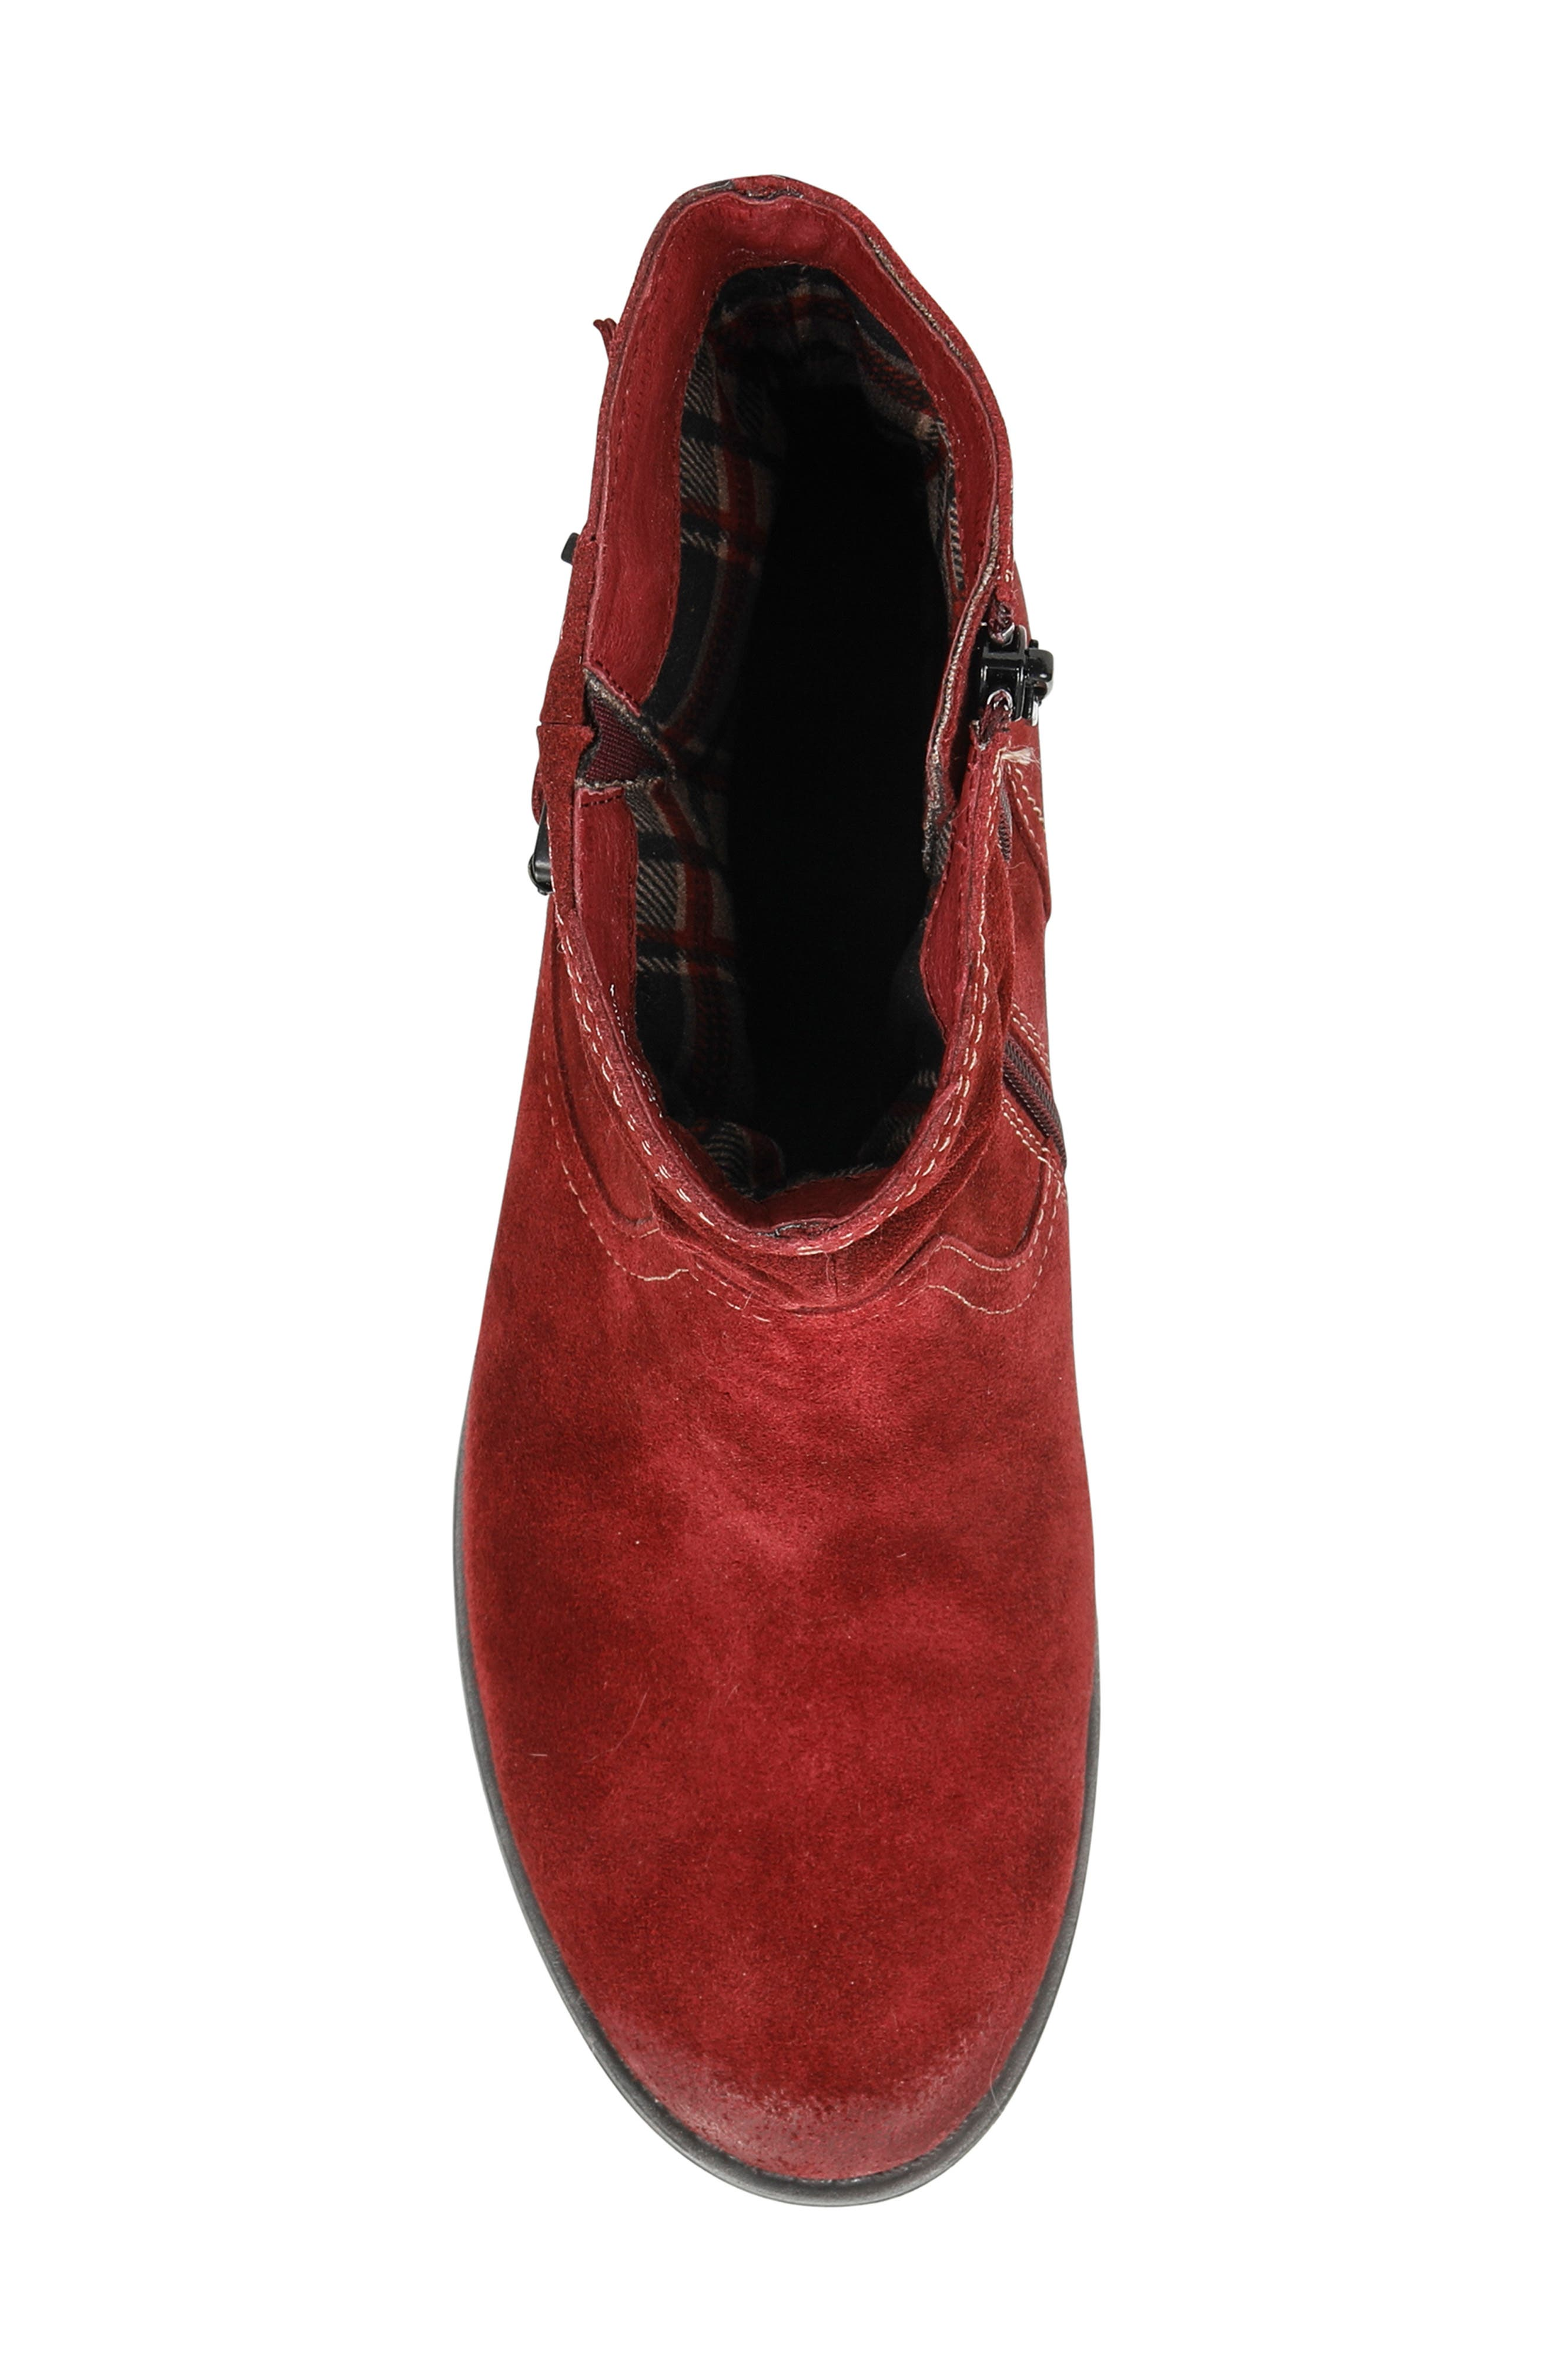 Beaufort Boot,                             Alternate thumbnail 5, color,                             GARNET SUEDE